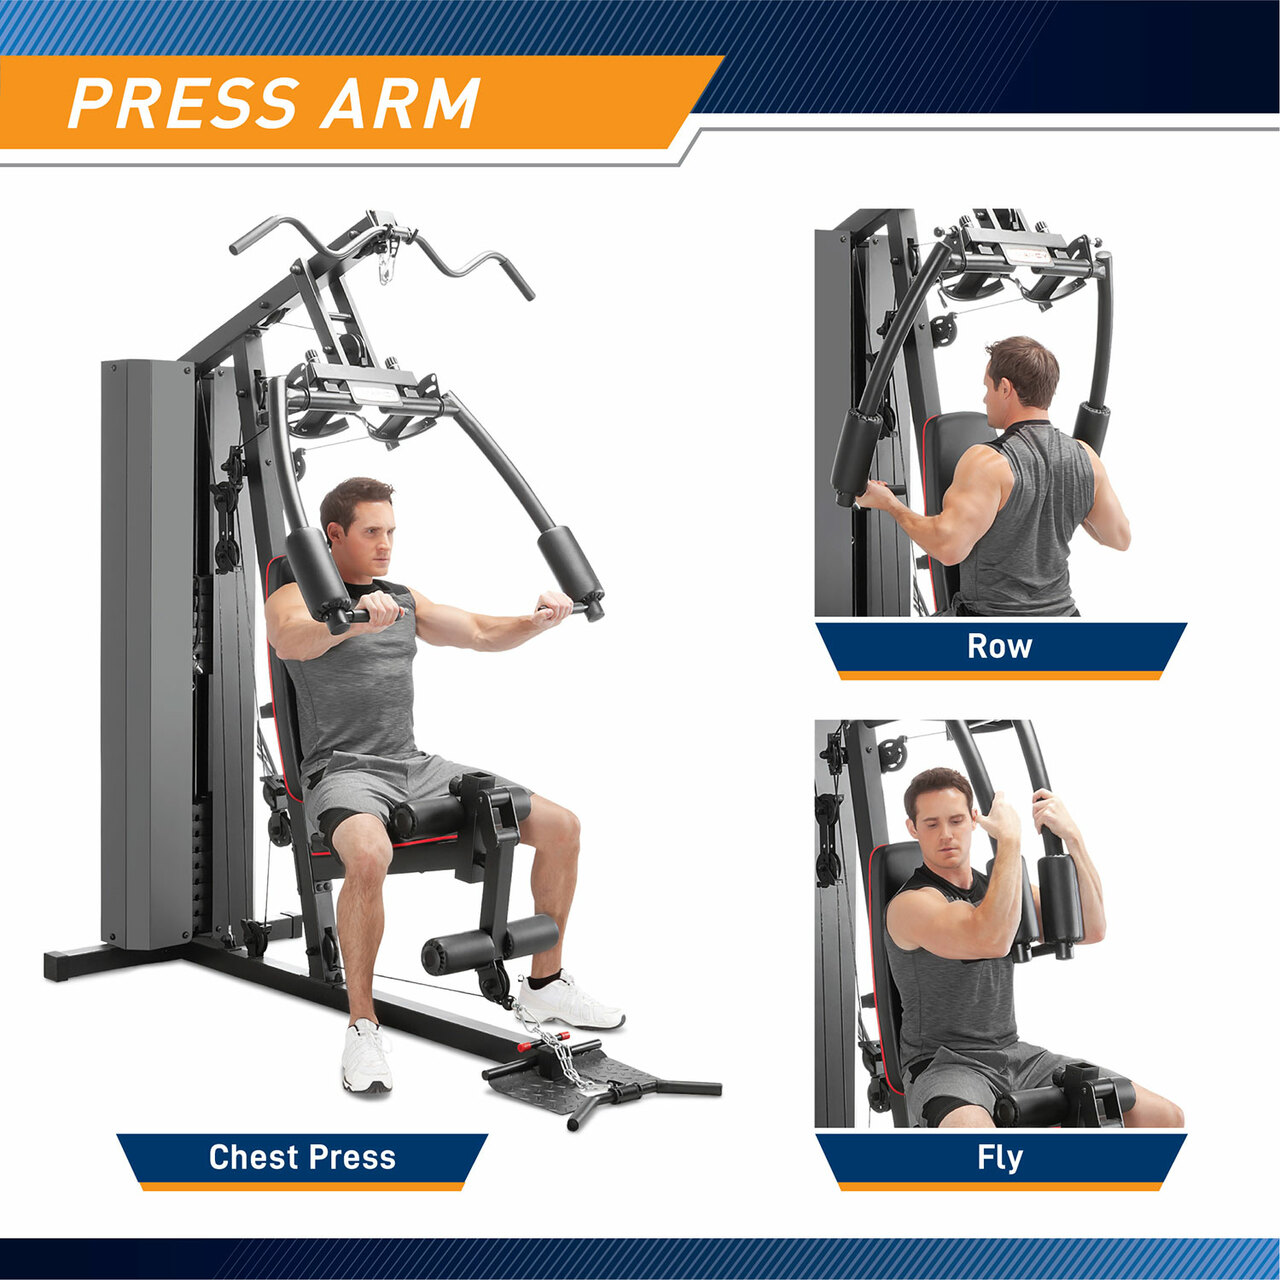 The Marcy Club 200 Lb Home Gym MKM-81010 has padded butterfly arms to target your pecs